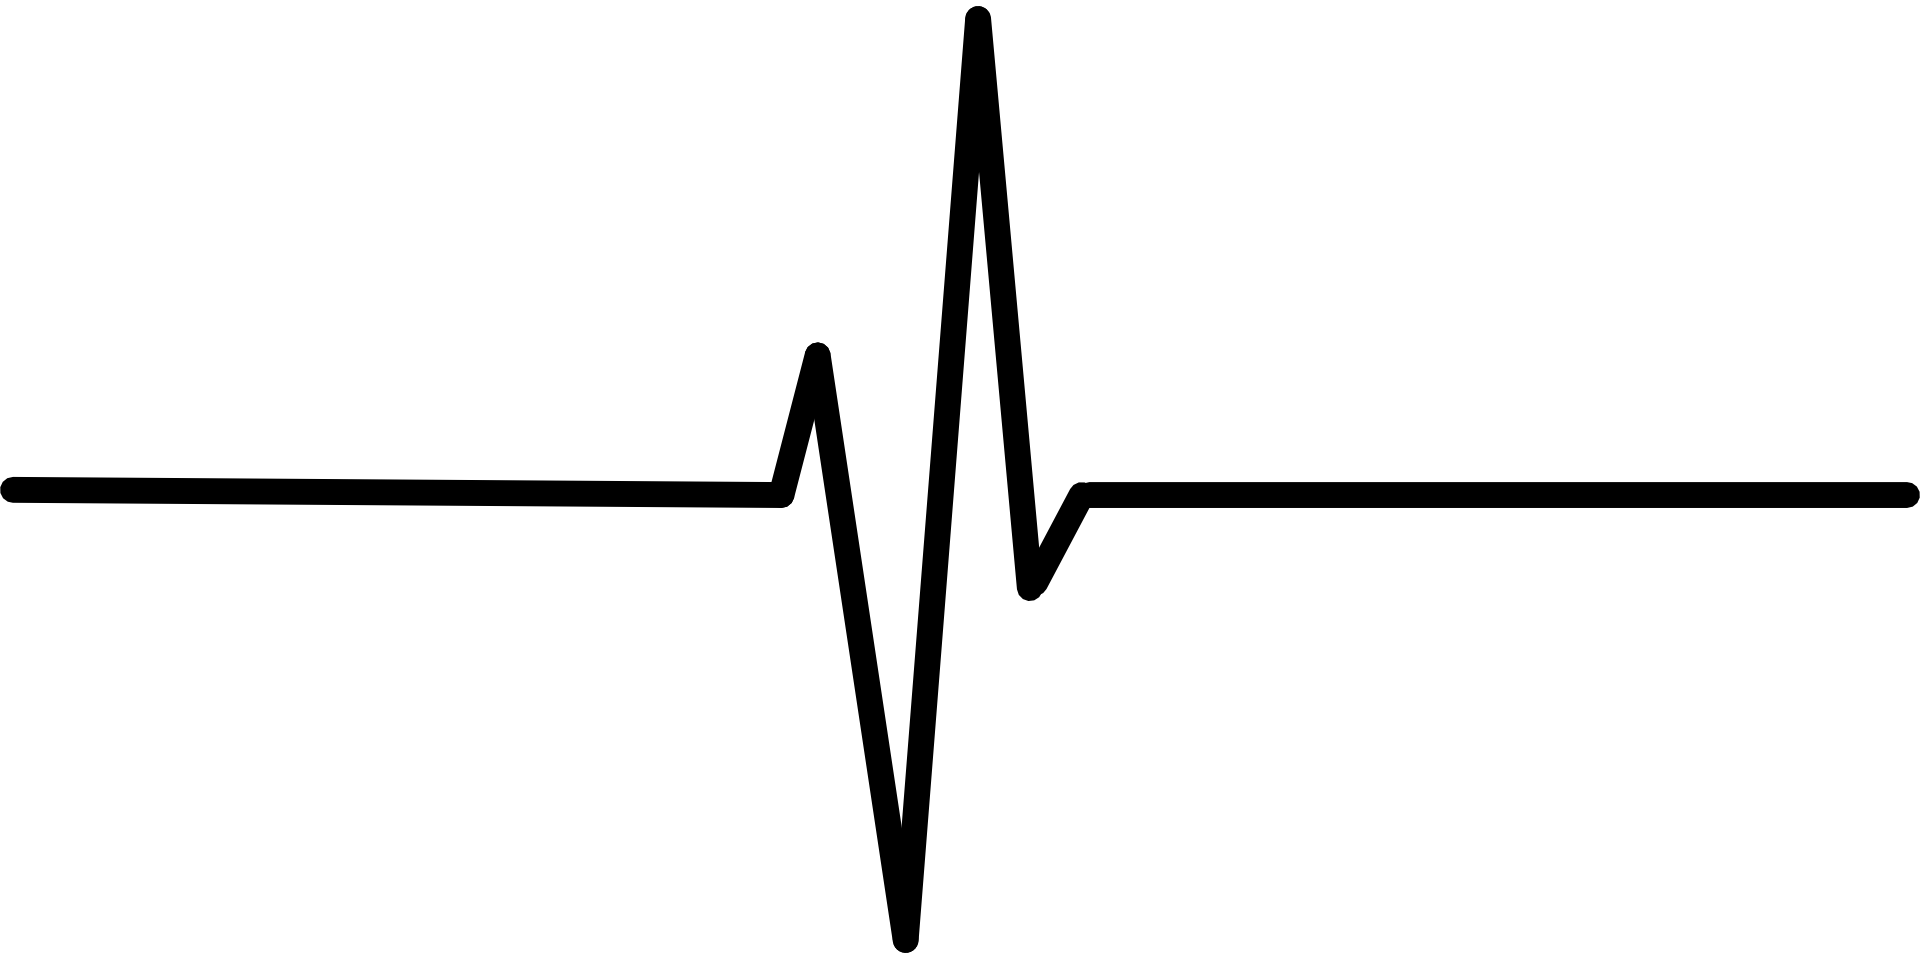 Ekg ecg pulse heart. Heartbeat clipart hearbeat